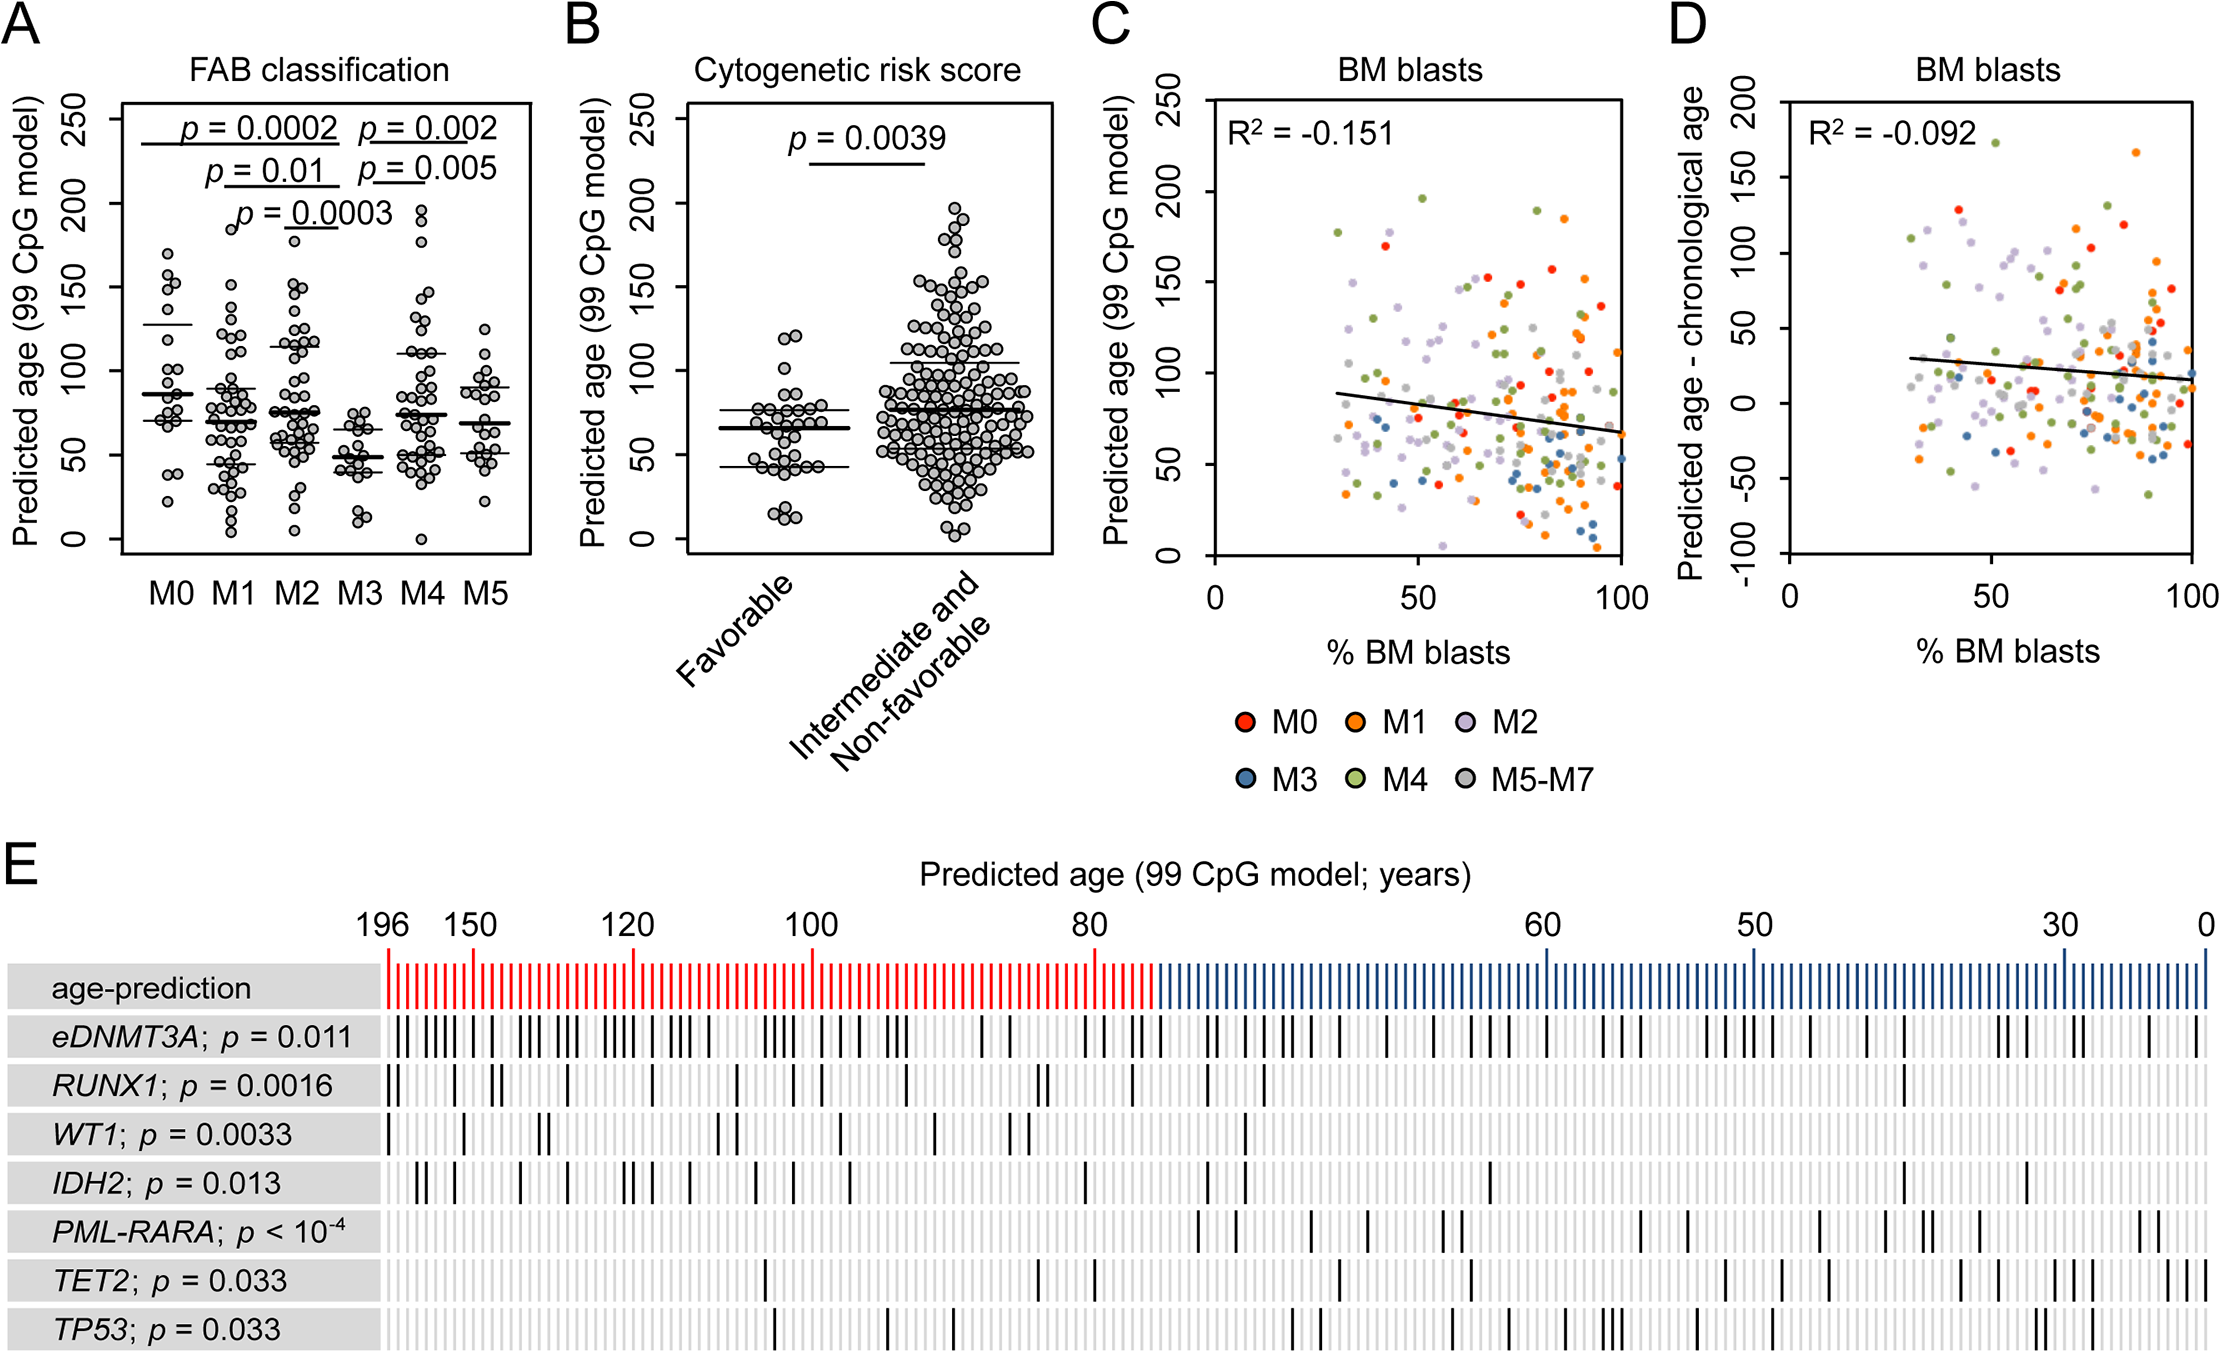 Correlation of epigenetic aging signatures with clinical parameters in AML.